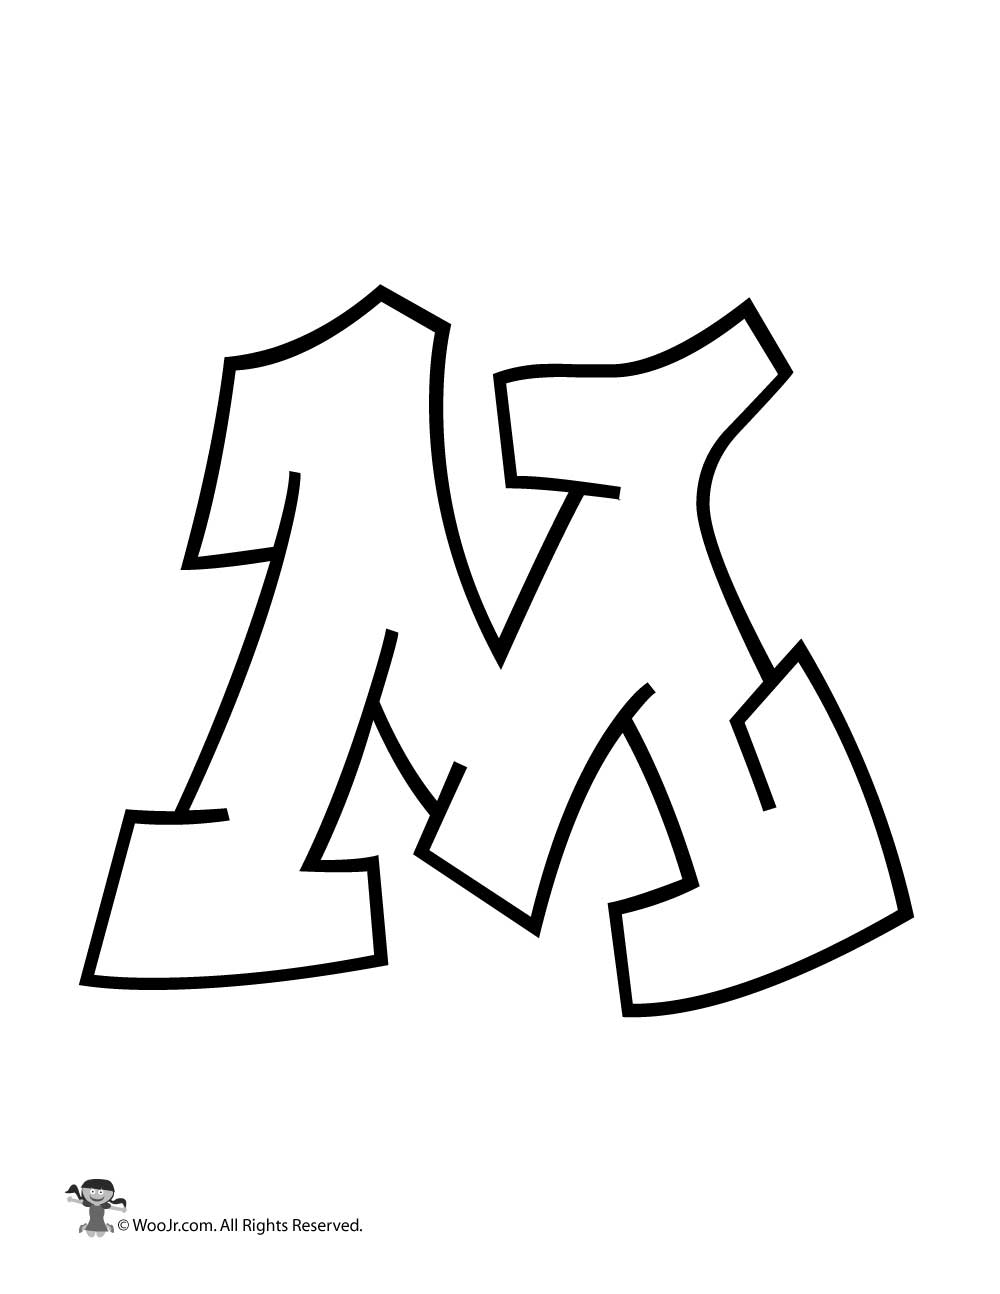 graffiti capital letter m